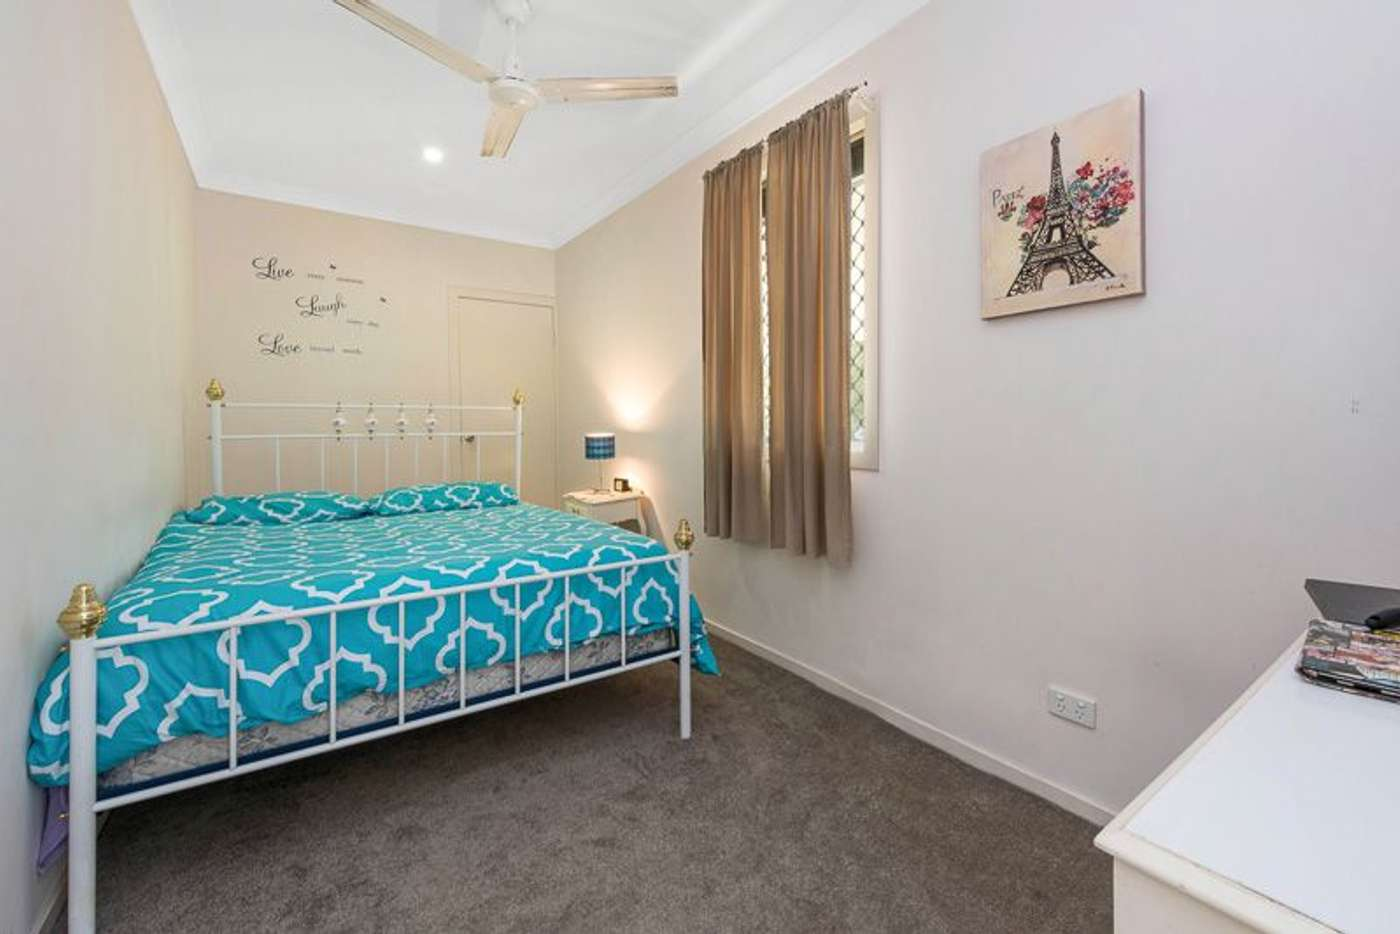 Sixth view of Homely house listing, 49 Grosvenor Terrace, Deception Bay QLD 4508